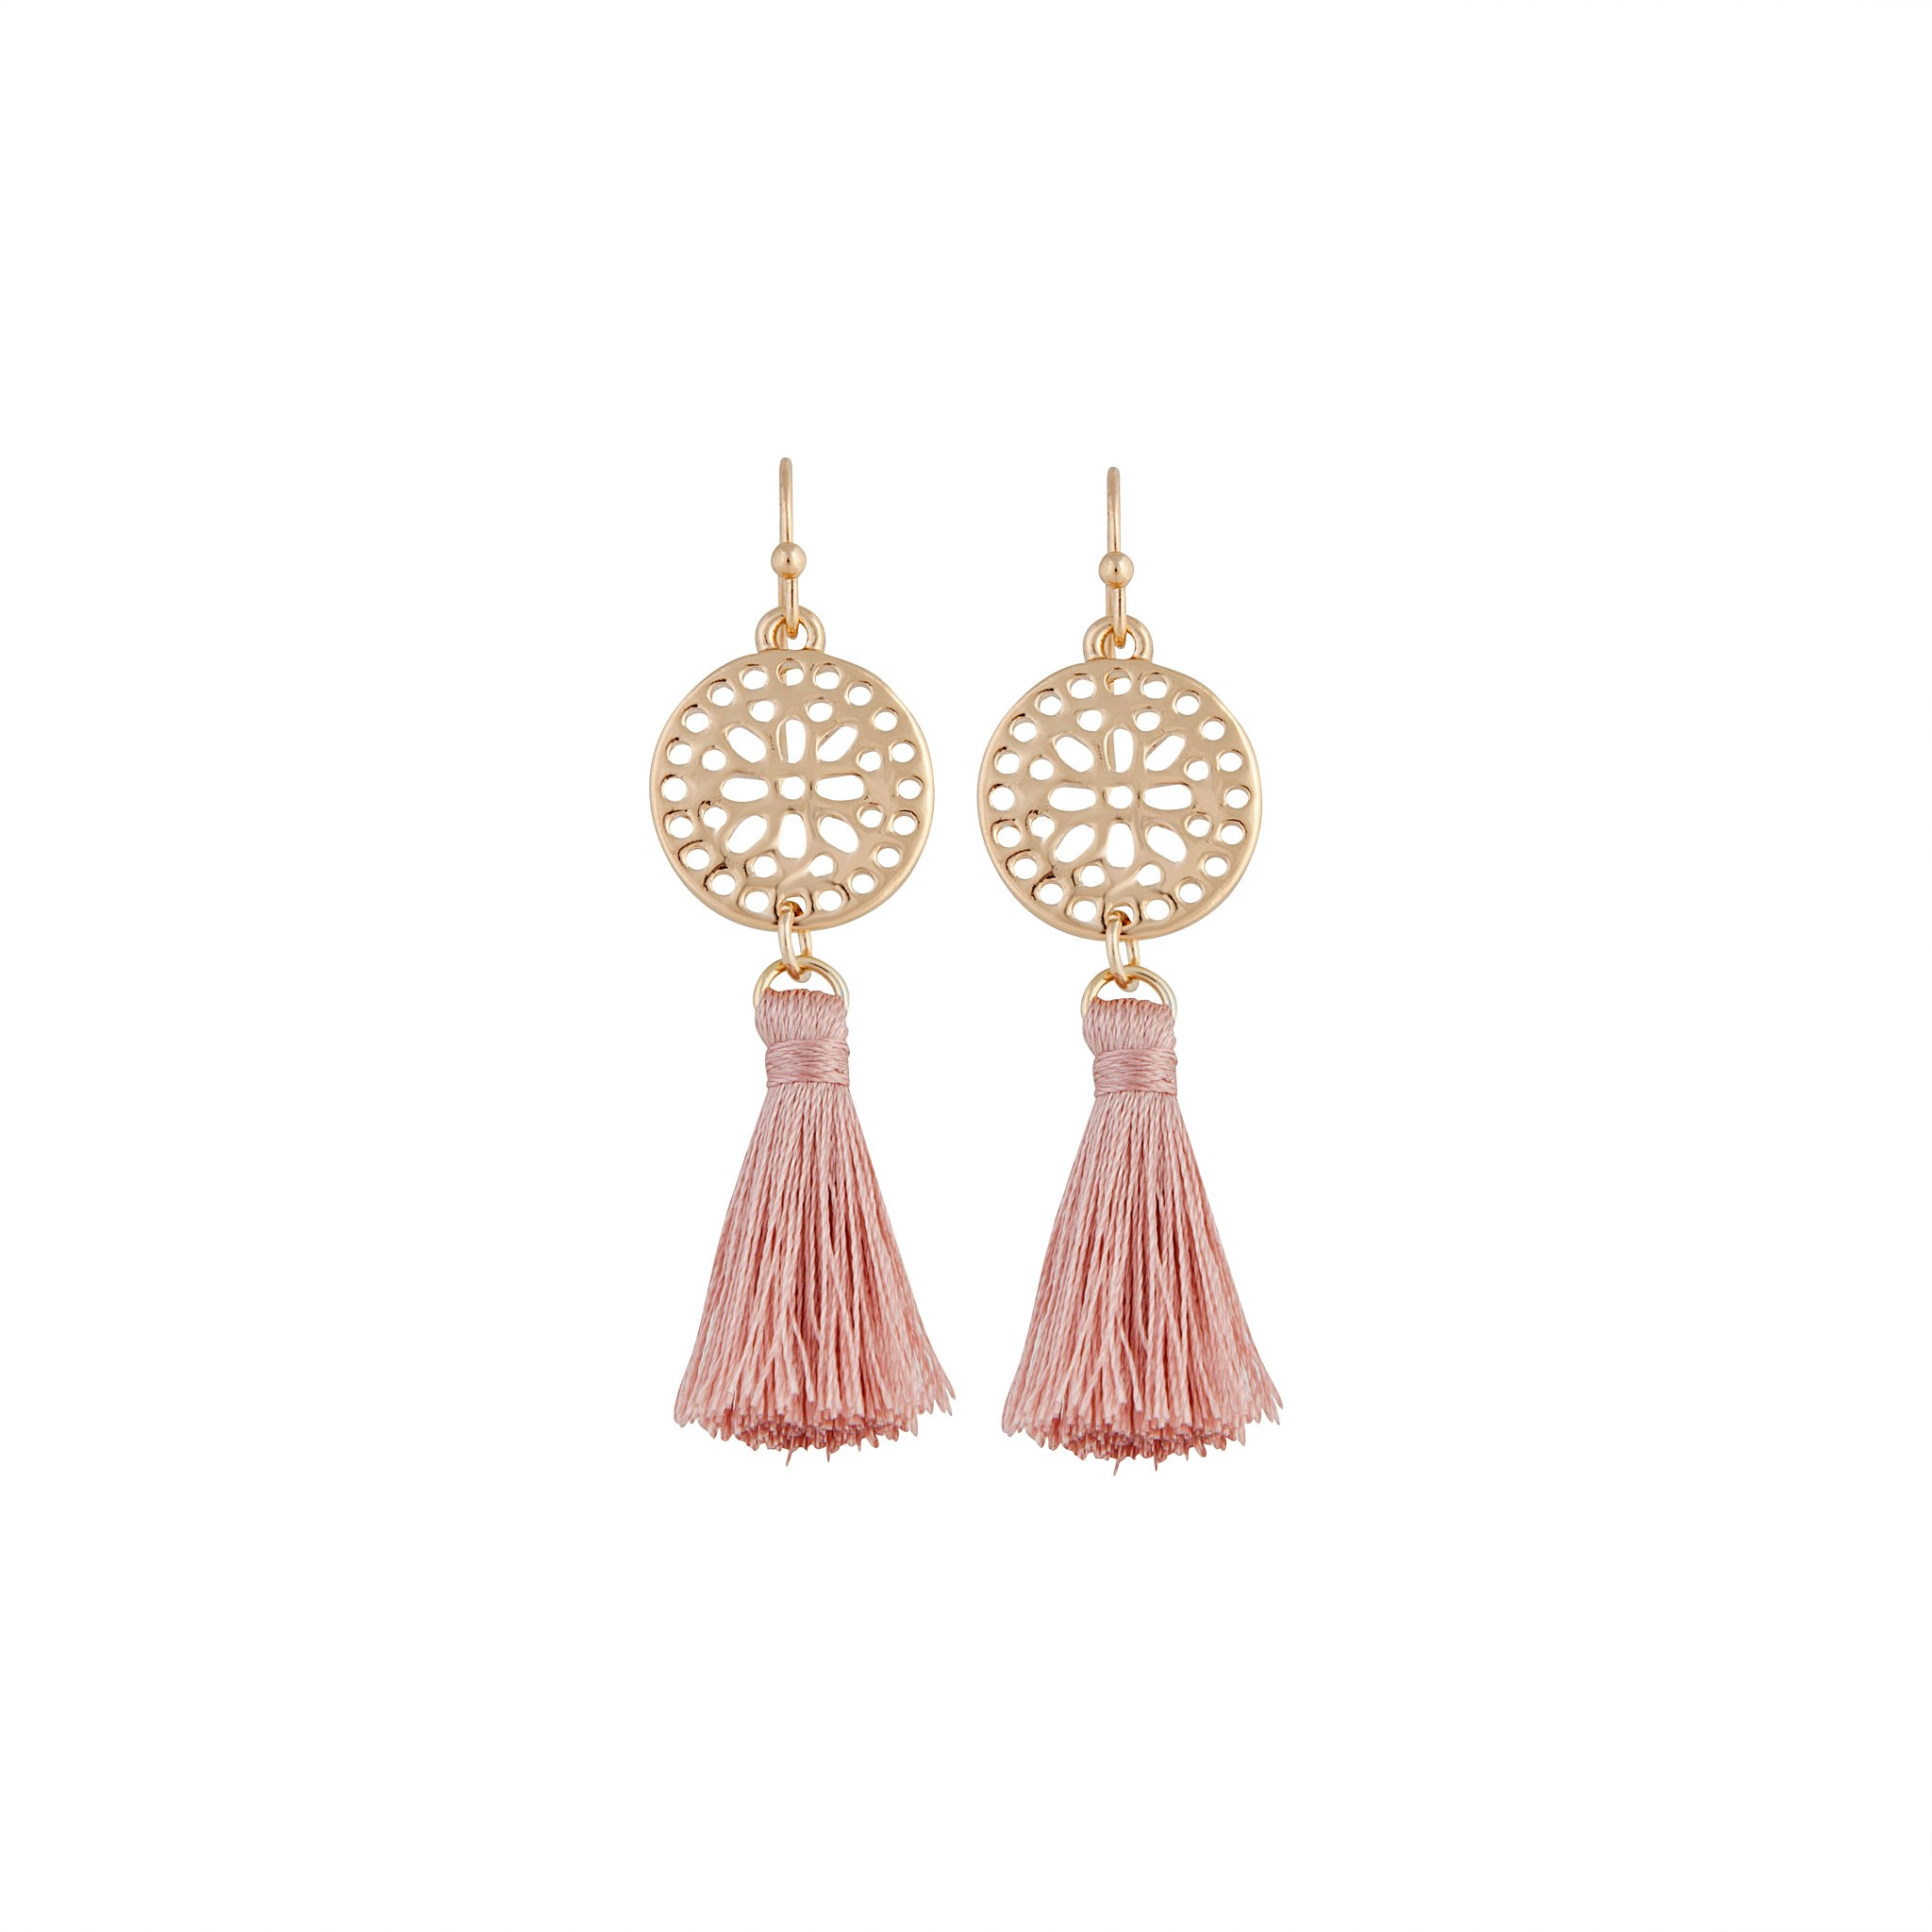 Lovisa Earrings Jewelry Outlet Shop The Collection Ptmetacentra Com